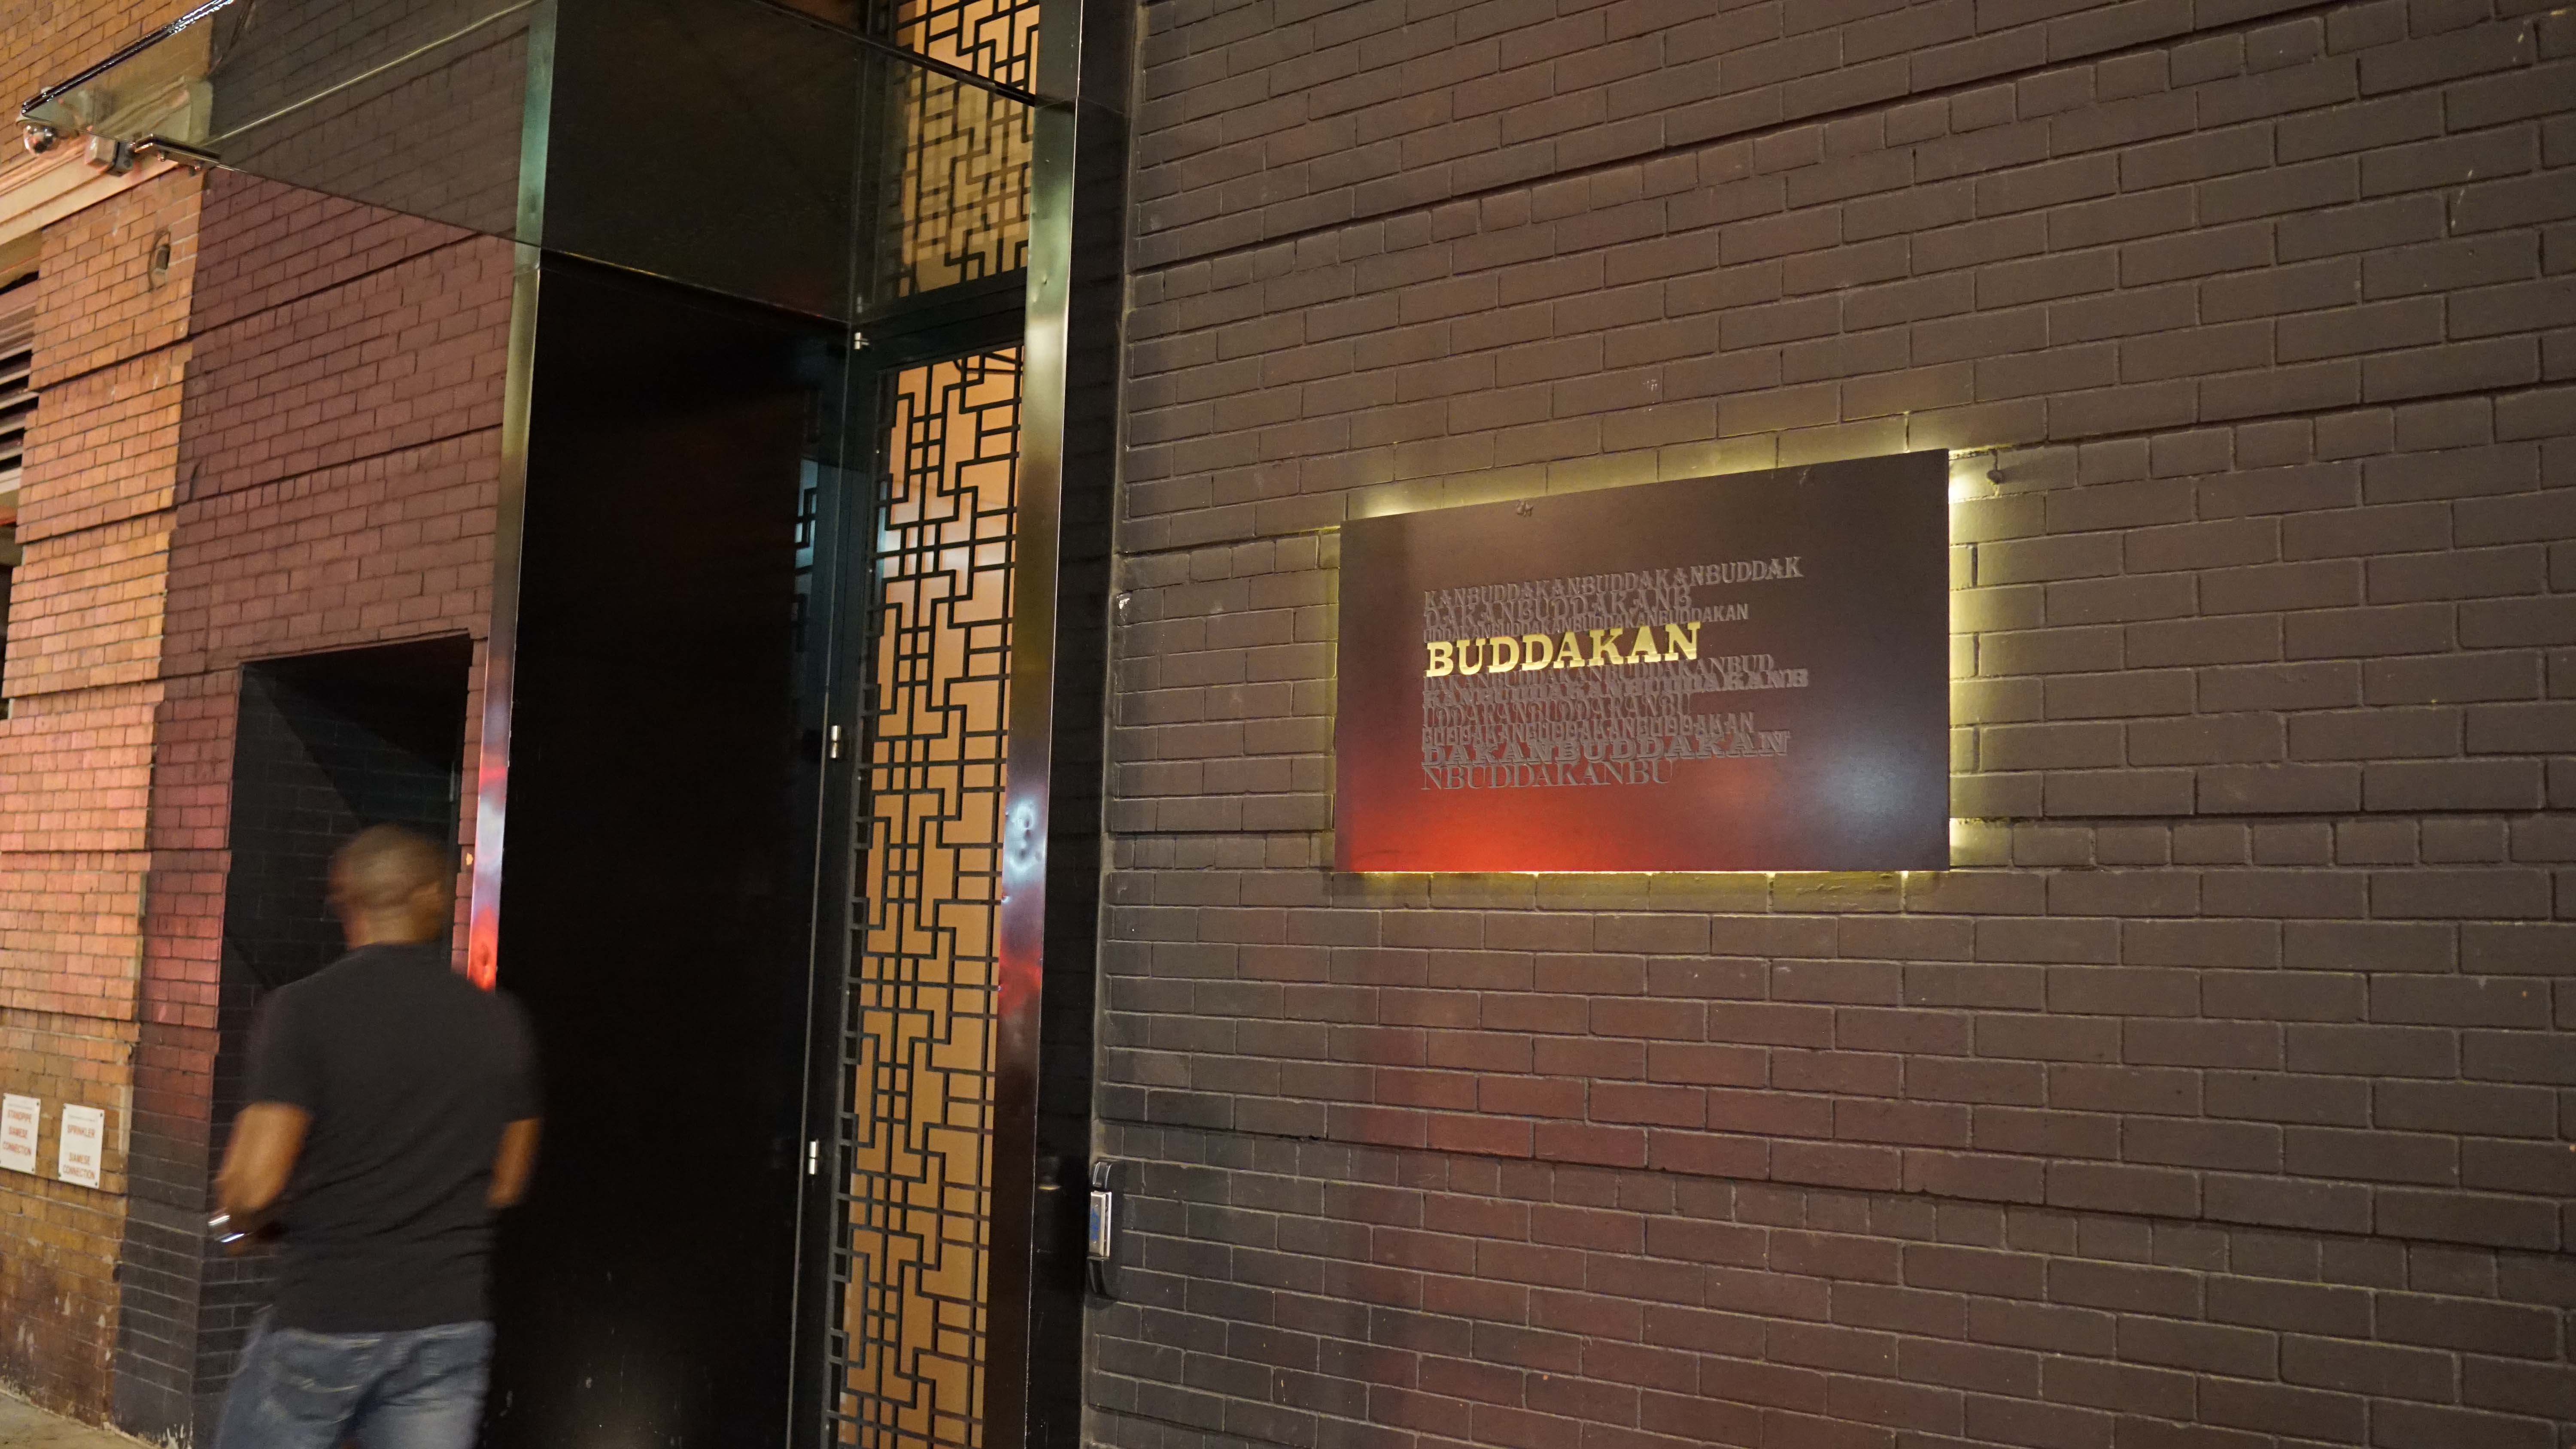 Buddakan sign